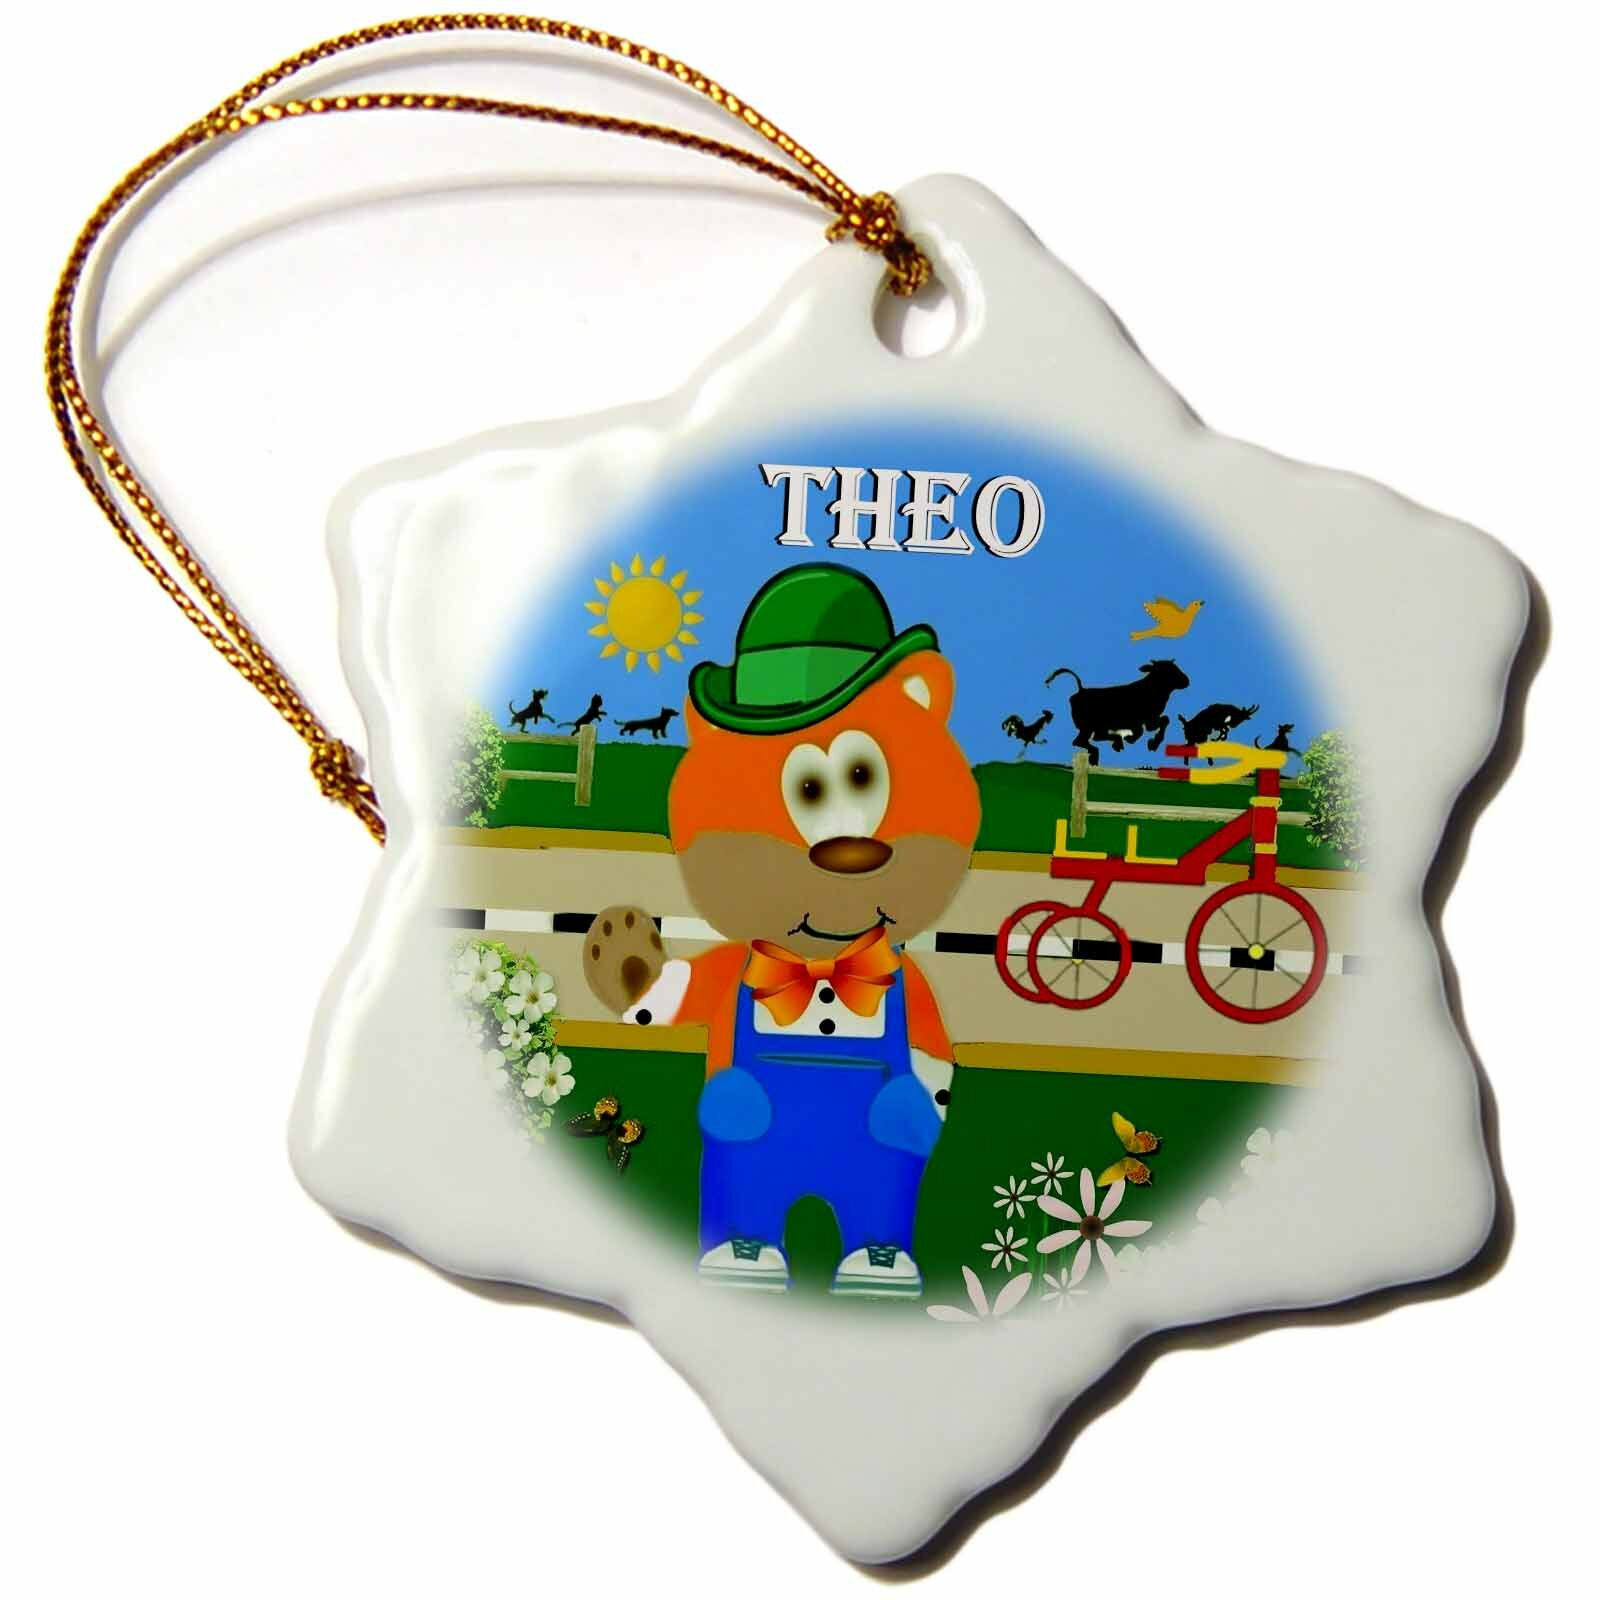 The Holiday Aisle Decorative Bear Wearing Overalls With The Name Theo Holiday Shaped Ornament Wayfair